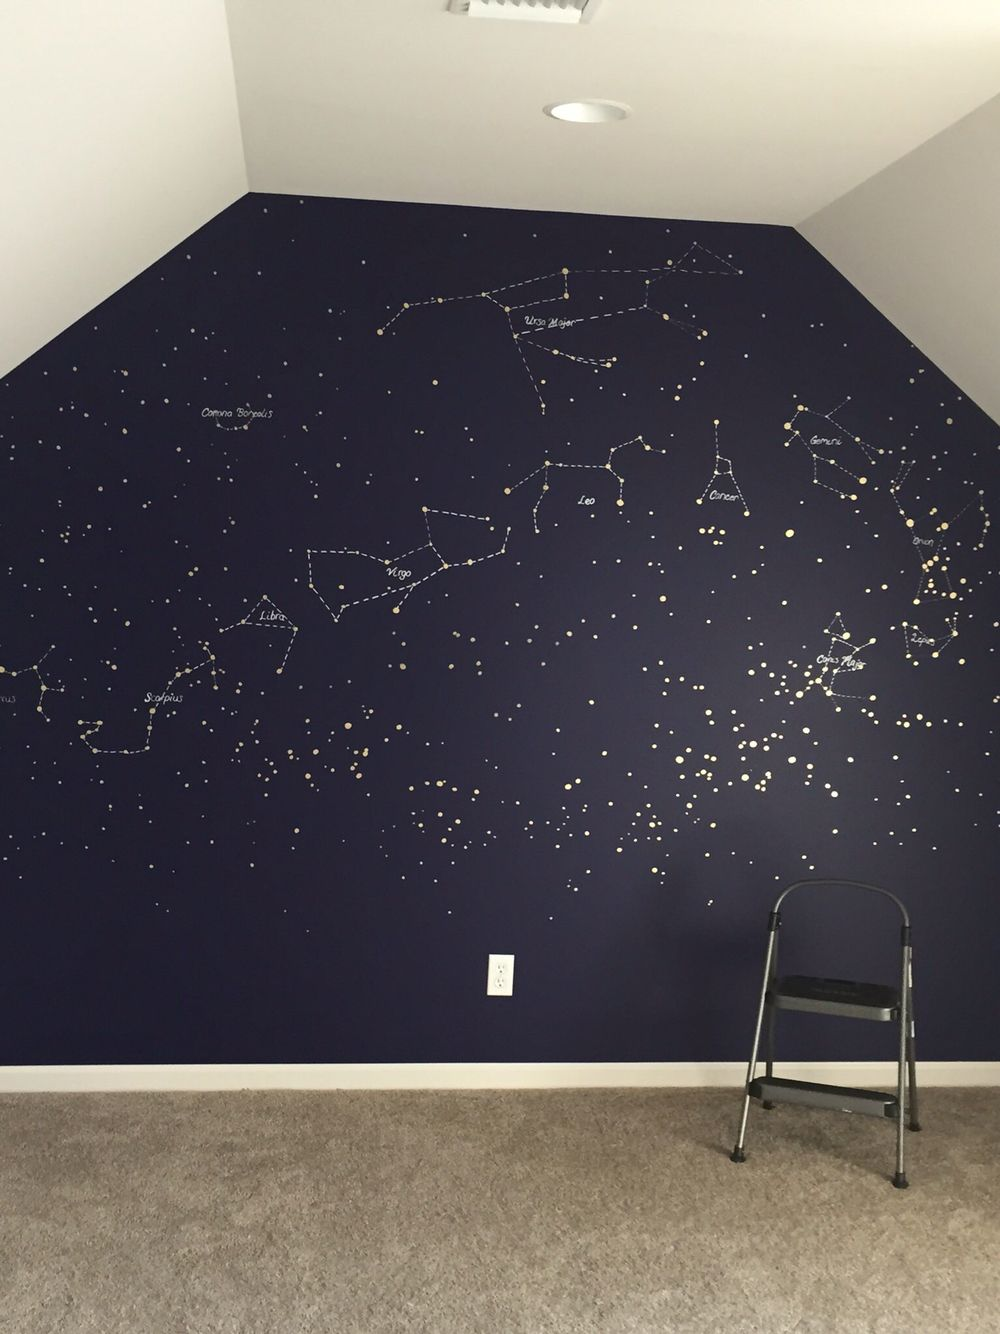 constellation map mural painted